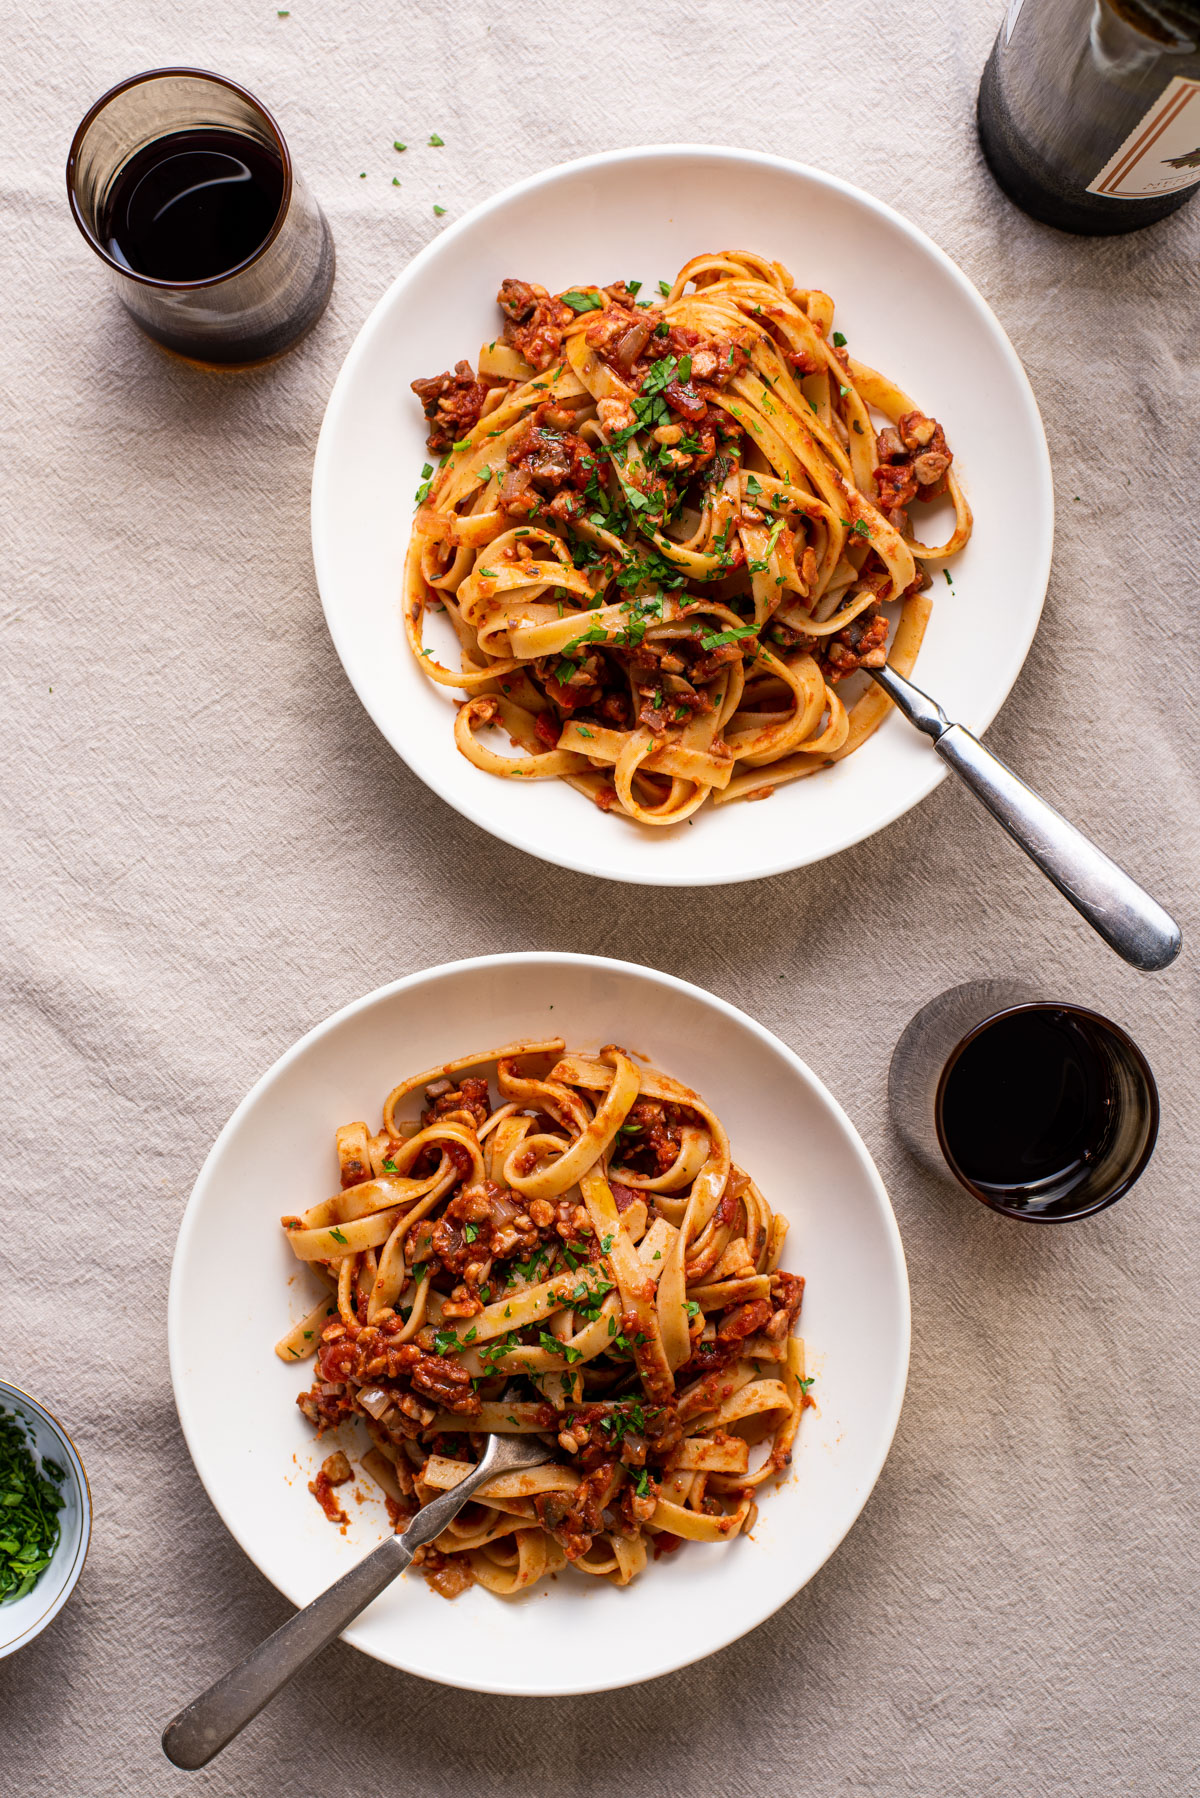 Fettuccine with tempeh bolognese in 2 white bowls on a beige tablecloth next to red wine.